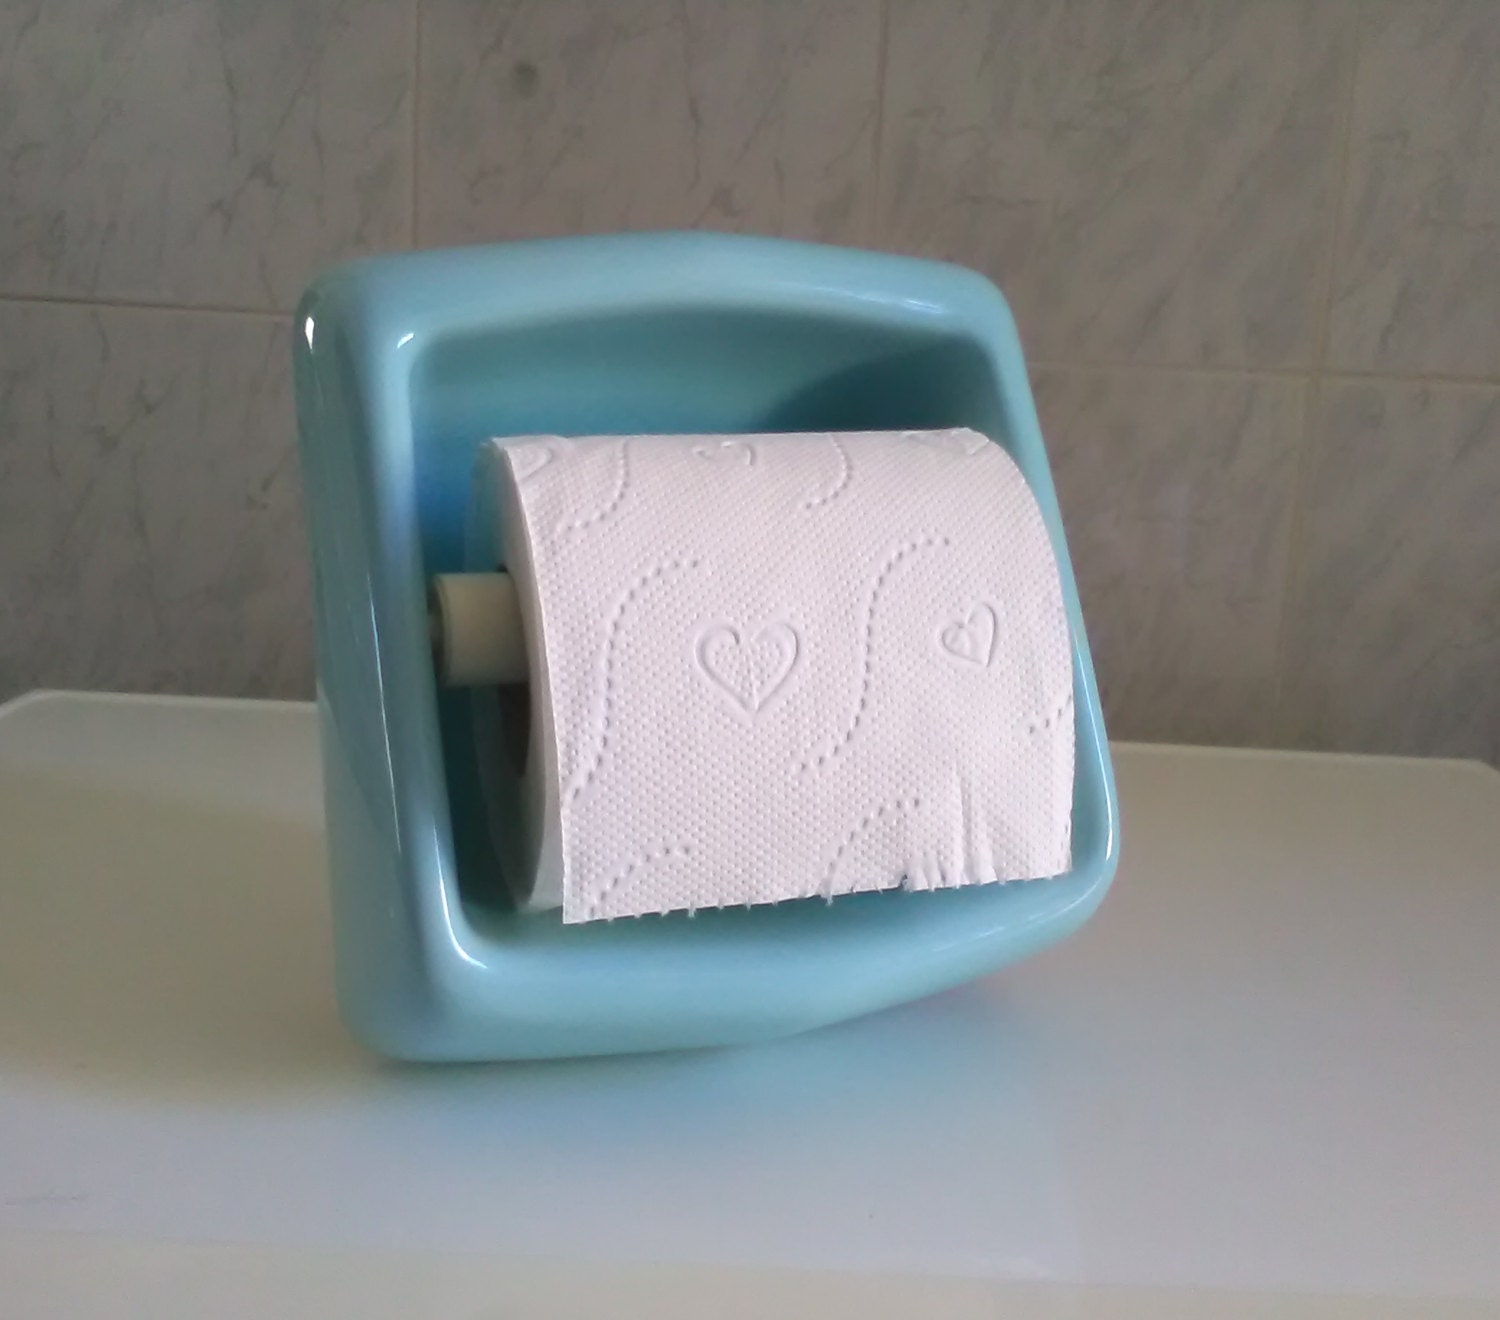 Vintage cyan ceramic toilet paper holder bathroom by vintafai - Ceramic recessed toilet roll holder ...